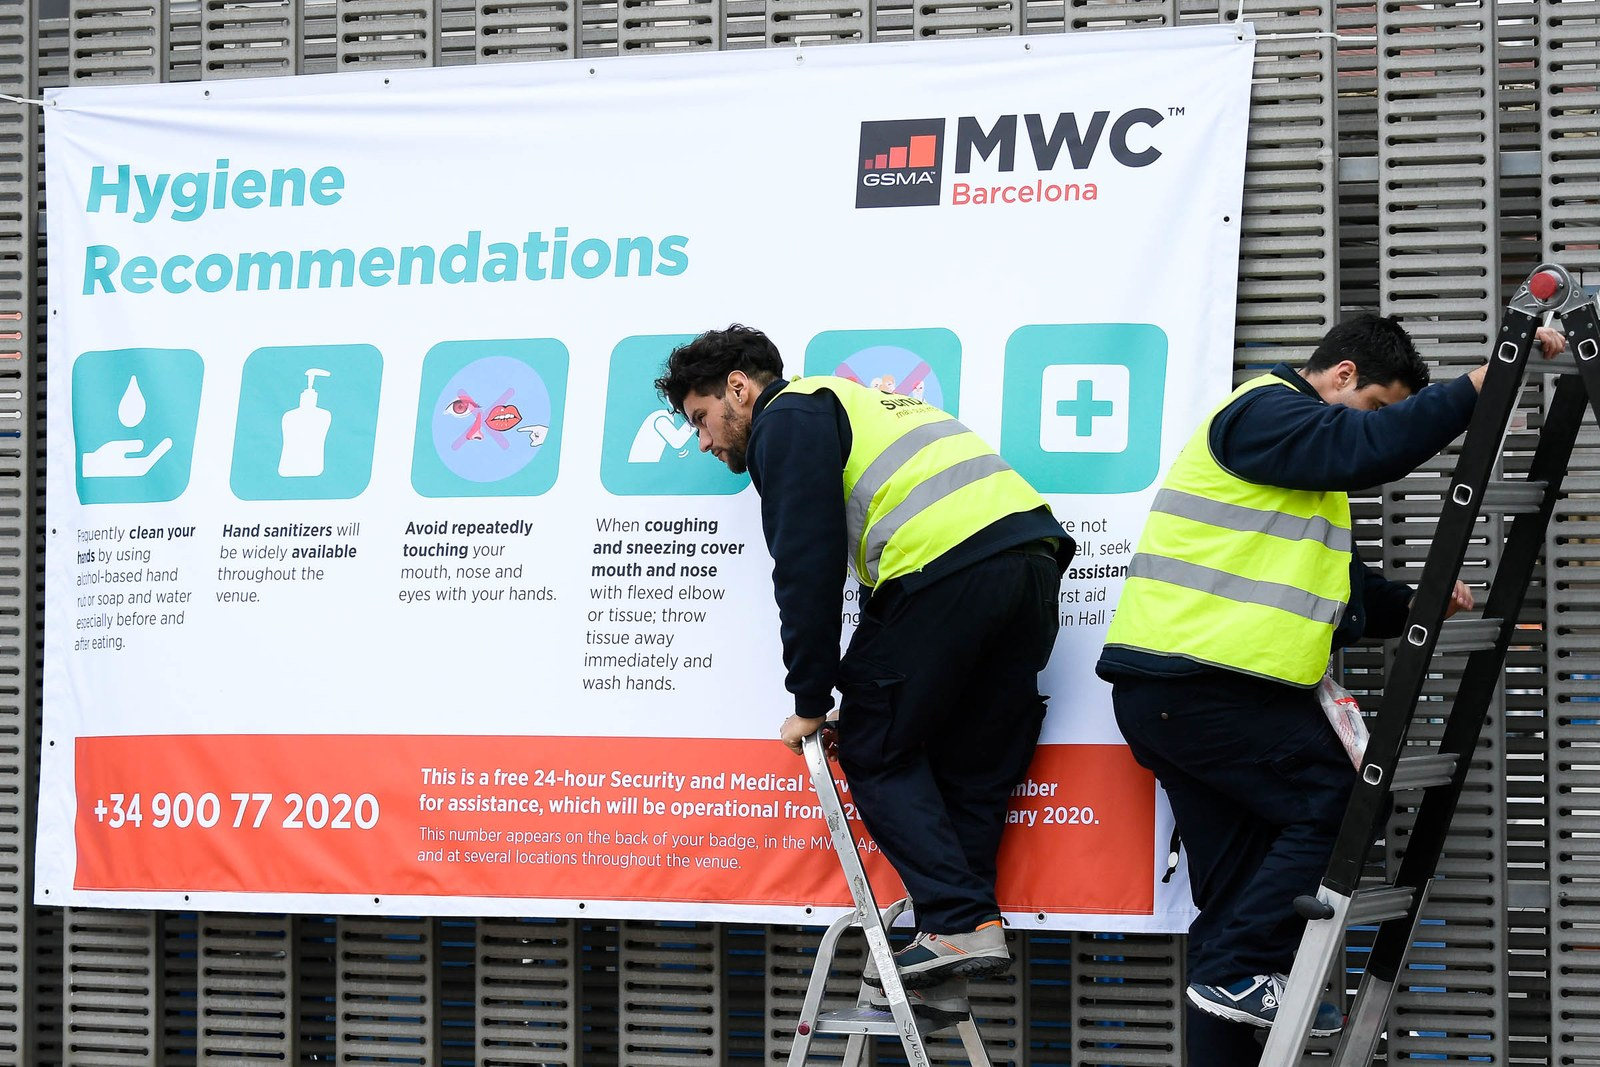 Workers on ladders install a banner with hygiene recommendations